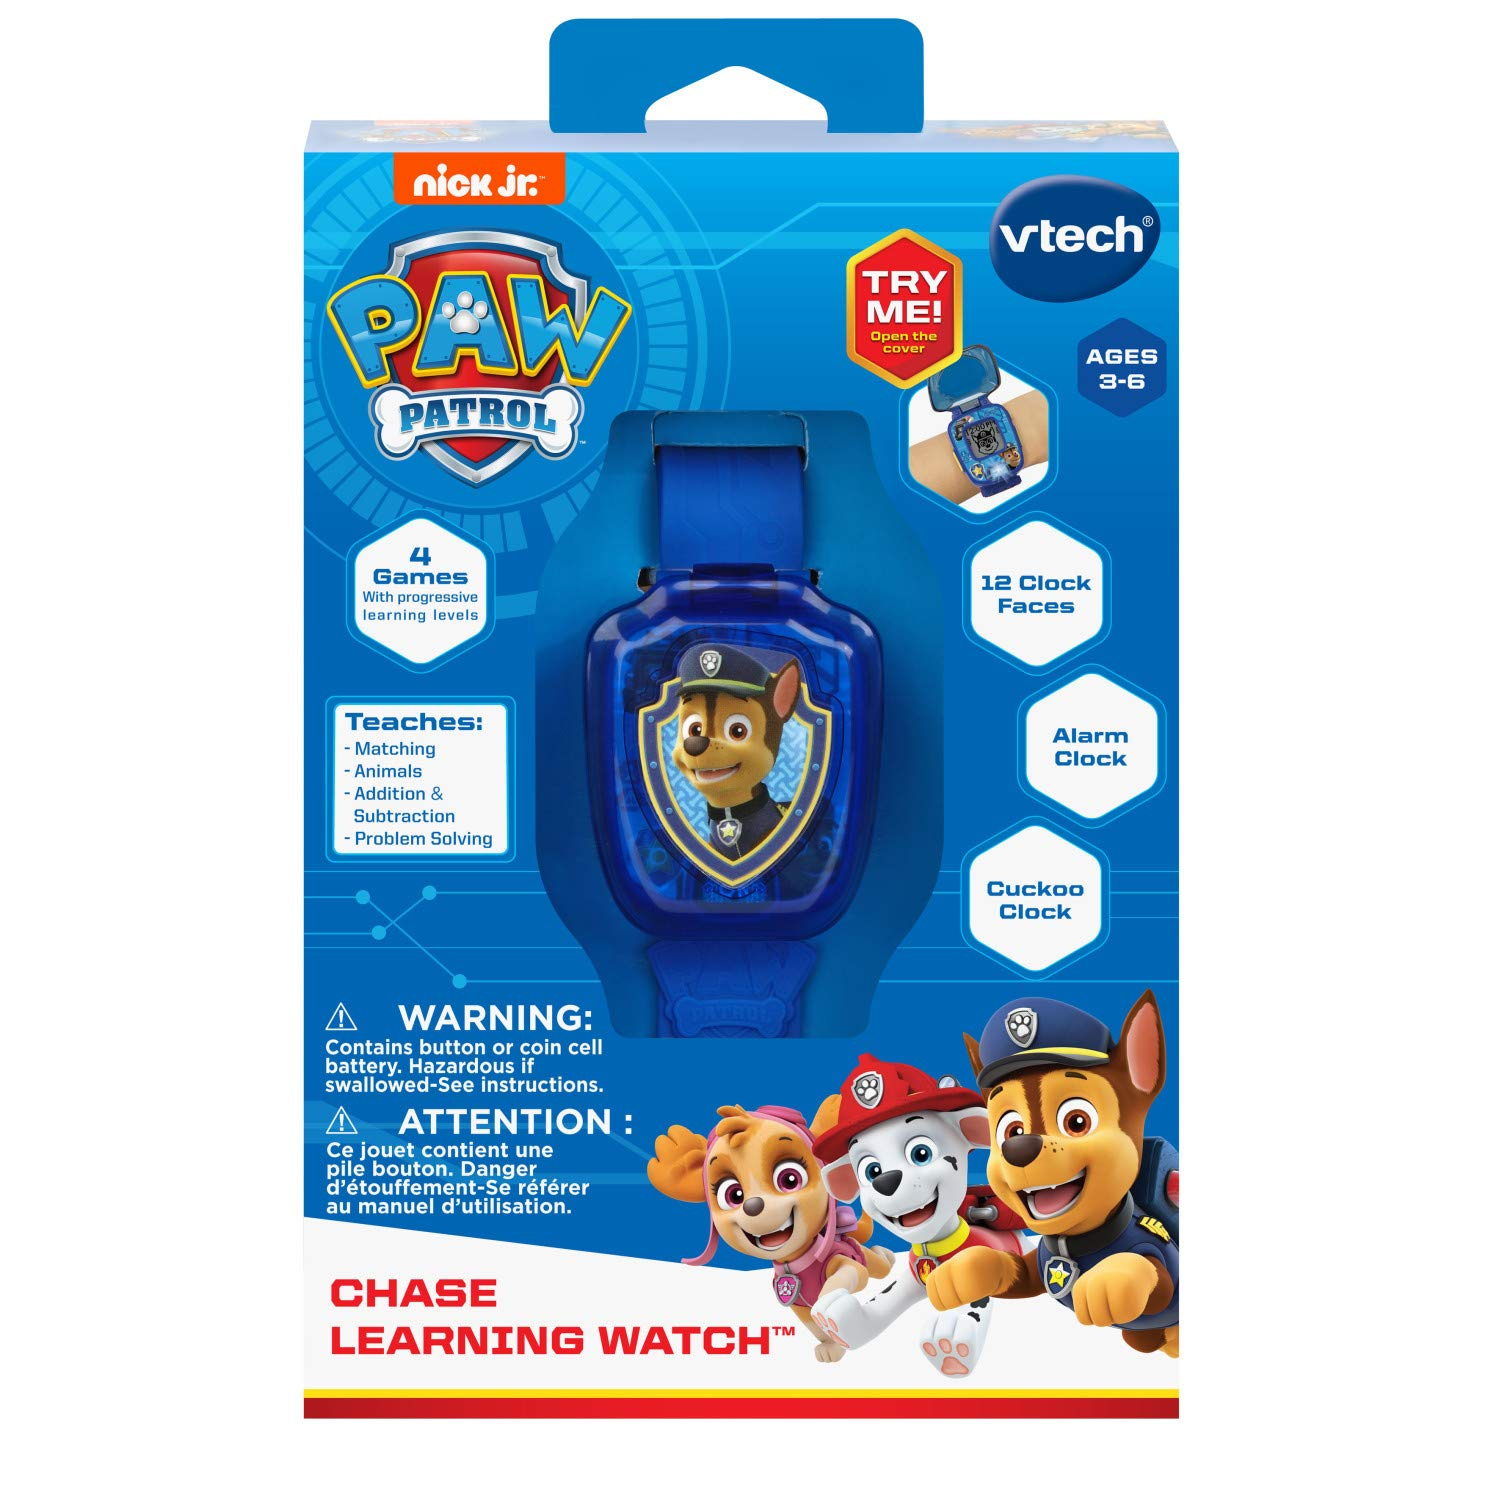 VTech Paw Patrol Chase Learning Watch, Blue by VTech (Image #5)